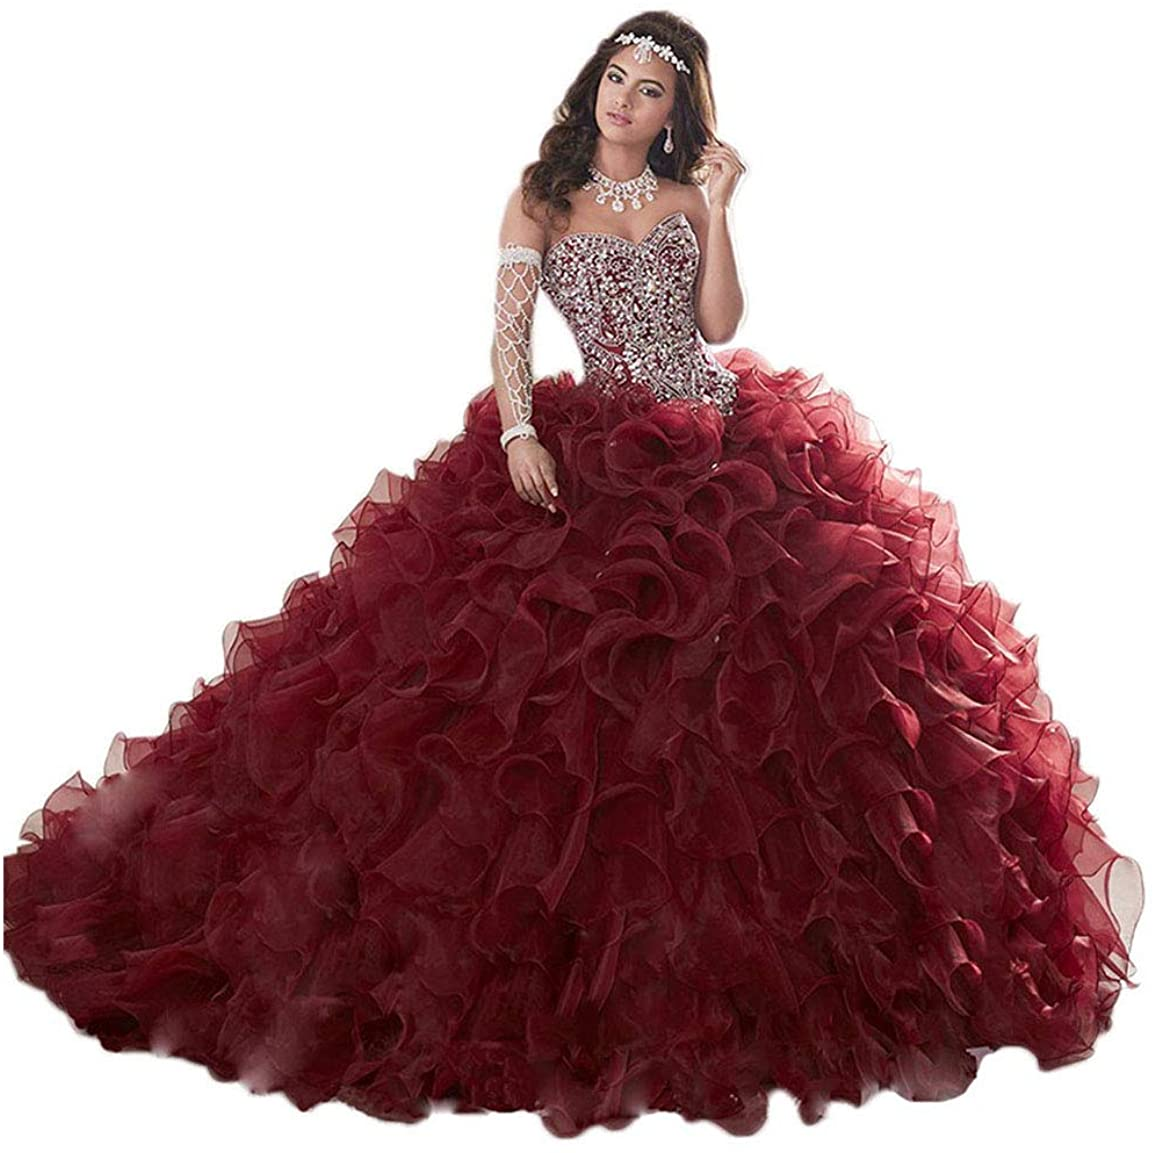 Fenghuavip Wedding Ball Gown Tube top Cocktail Crystal Beads Evening Gowns